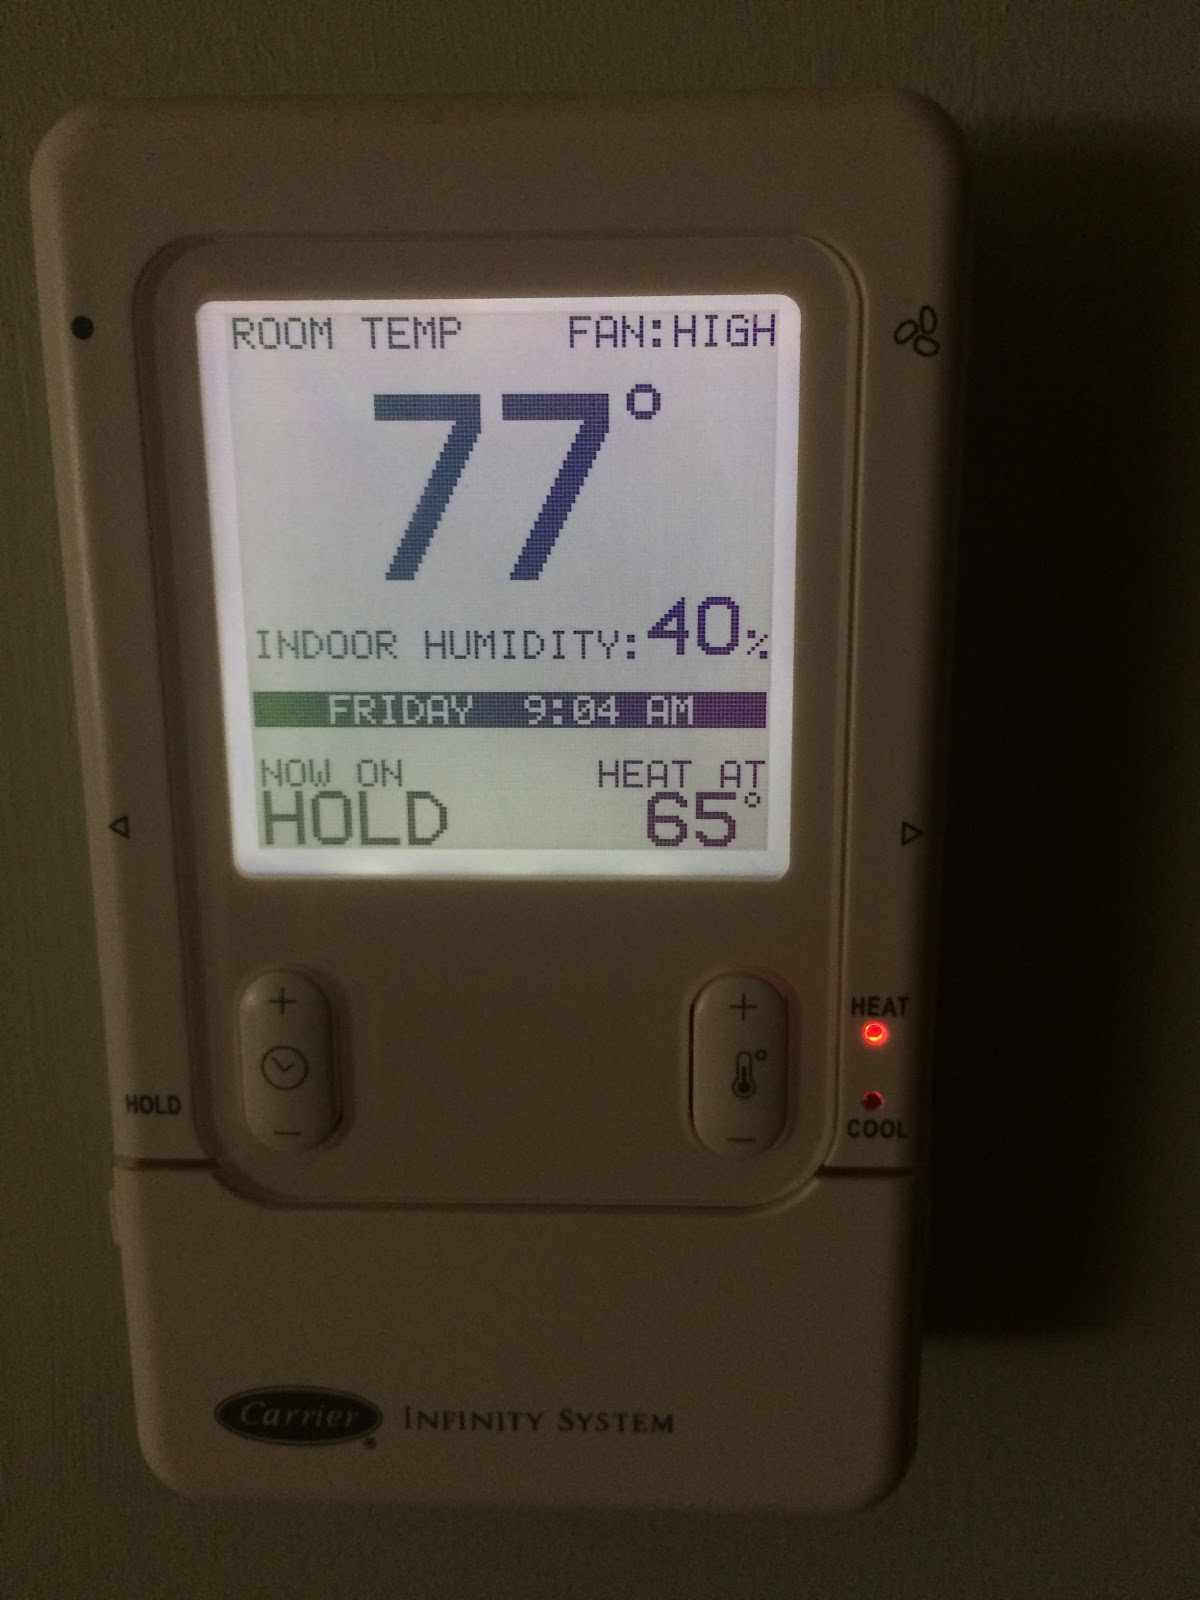 Thermostat at 77 and comfy with low humidity